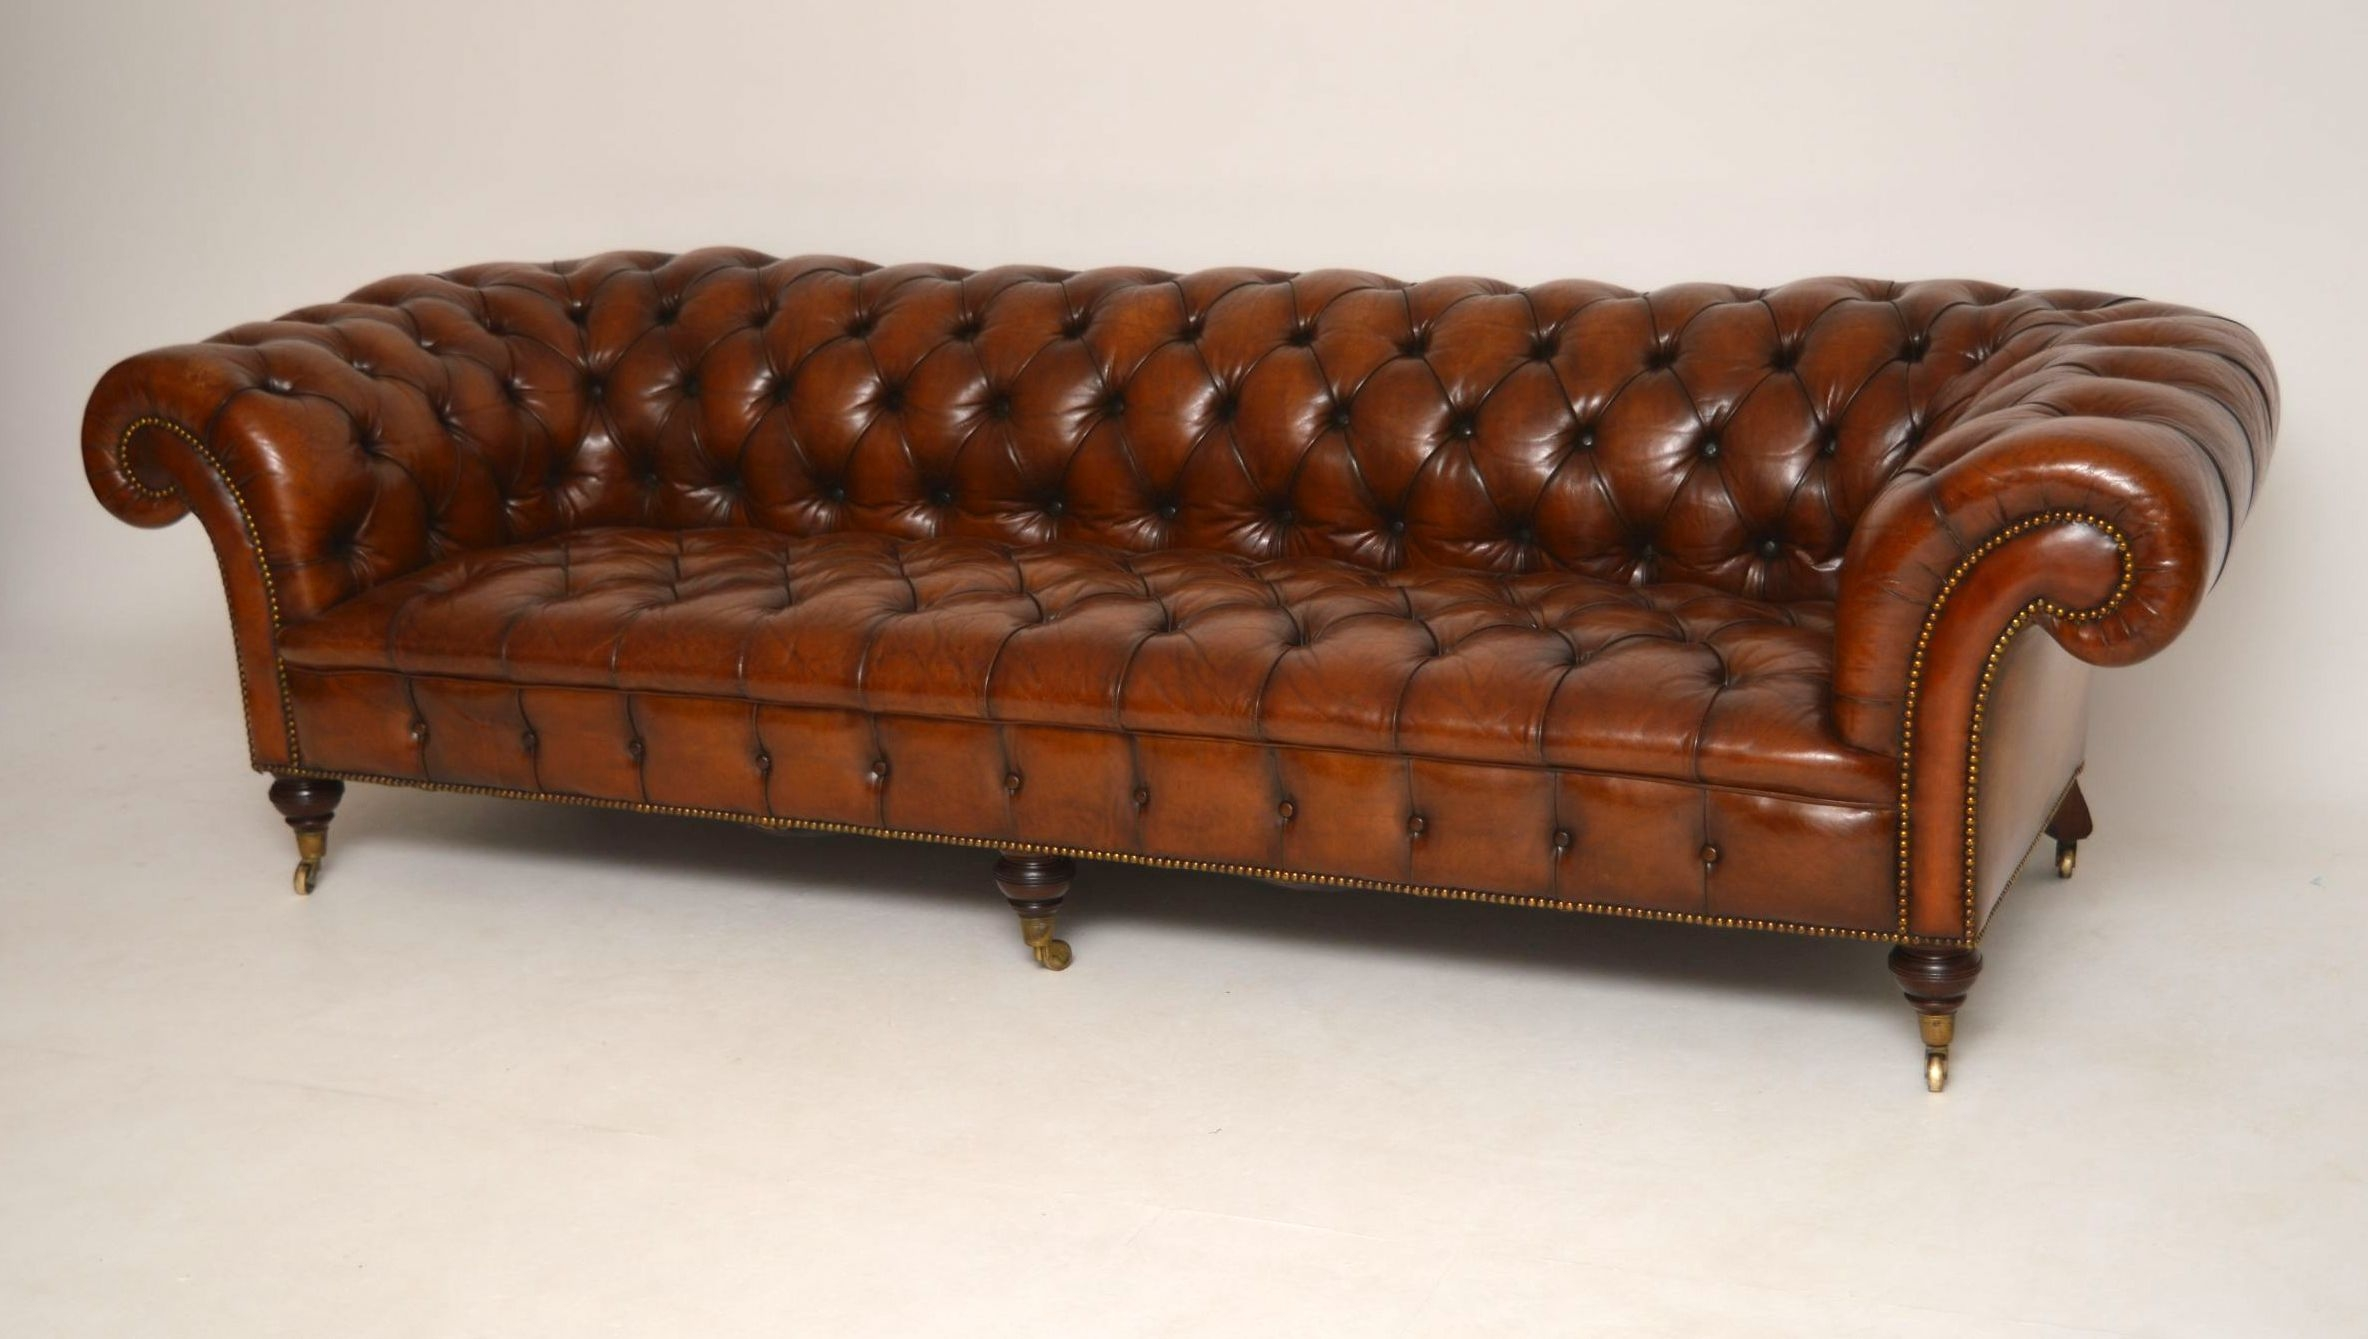 Storage Antique Chesterfield Sofas 24 With Antique Chesterfield Regarding Victorian Leather Sofas (Image 8 of 15)